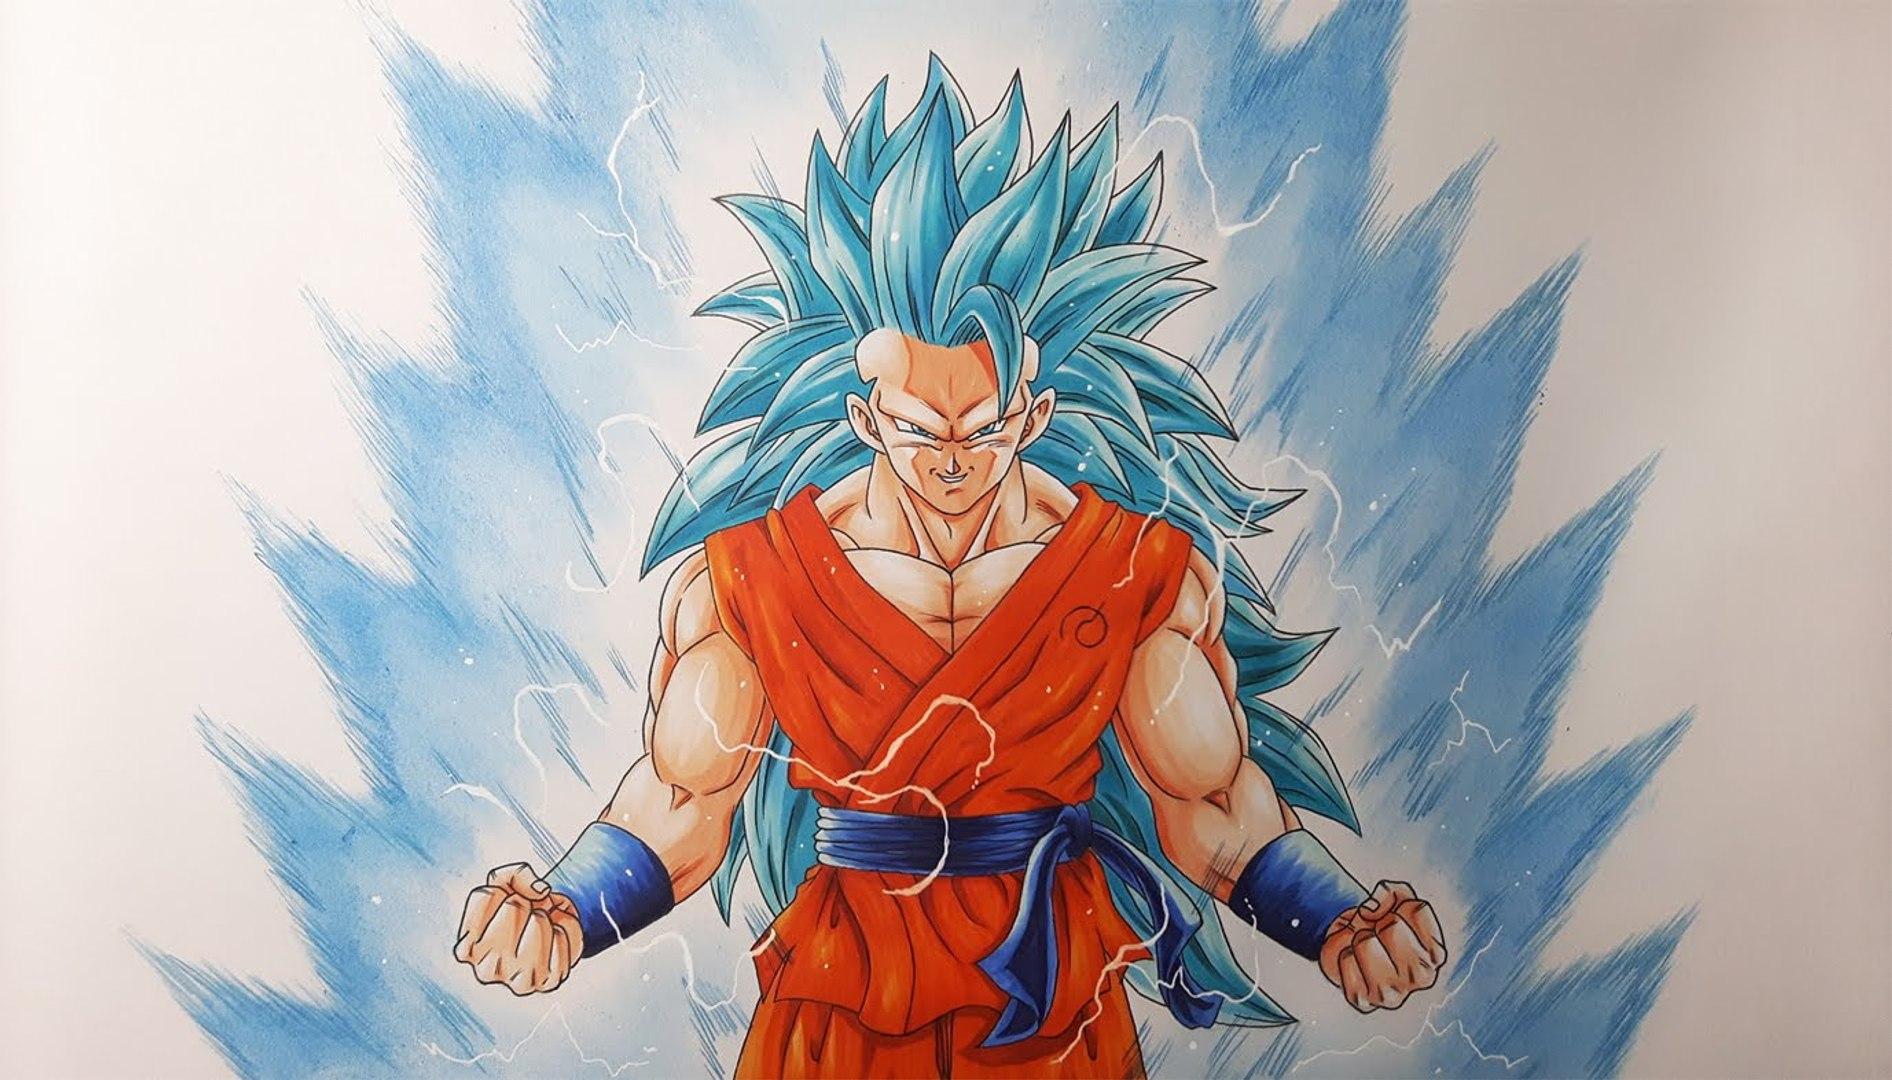 Dessiner Goku Super Saiyan Blue 3 Video Dailymotion